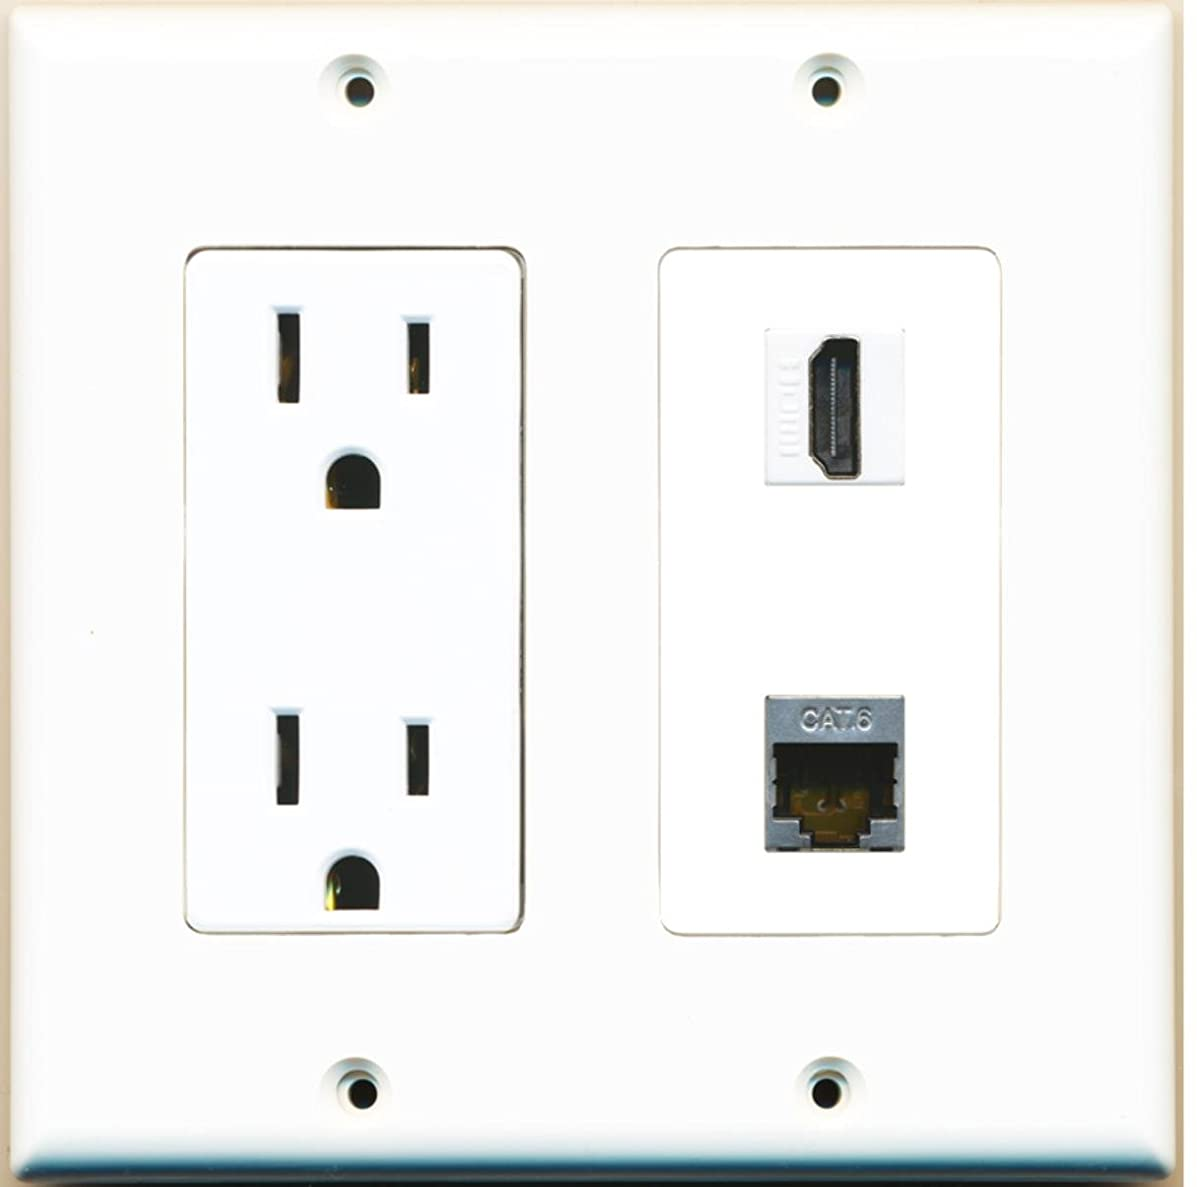 RiteAV - 15 Amp Power Outlet and 1 Port HDMI and 1 Port Shielded Cat6 Ethernet Decora Type Wall Plate White